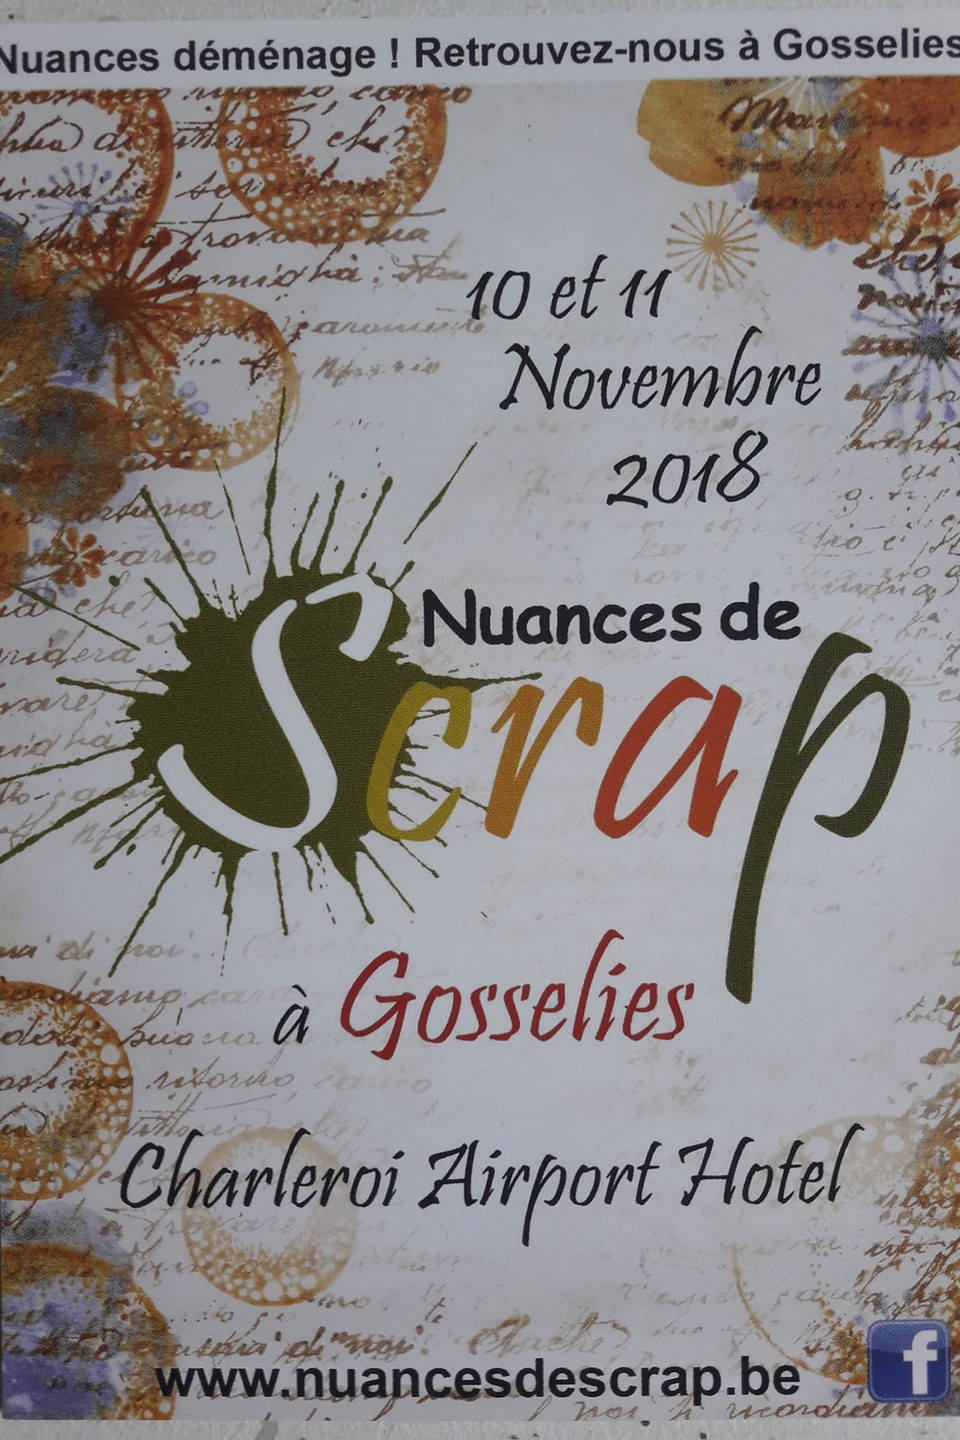 Salon Nuances de Scrap à Gosselies novembre 2018 salon diy scrap scrapbooking kits mini-albums les-kits-de-couleurs-en-folie couleurs-en-folie